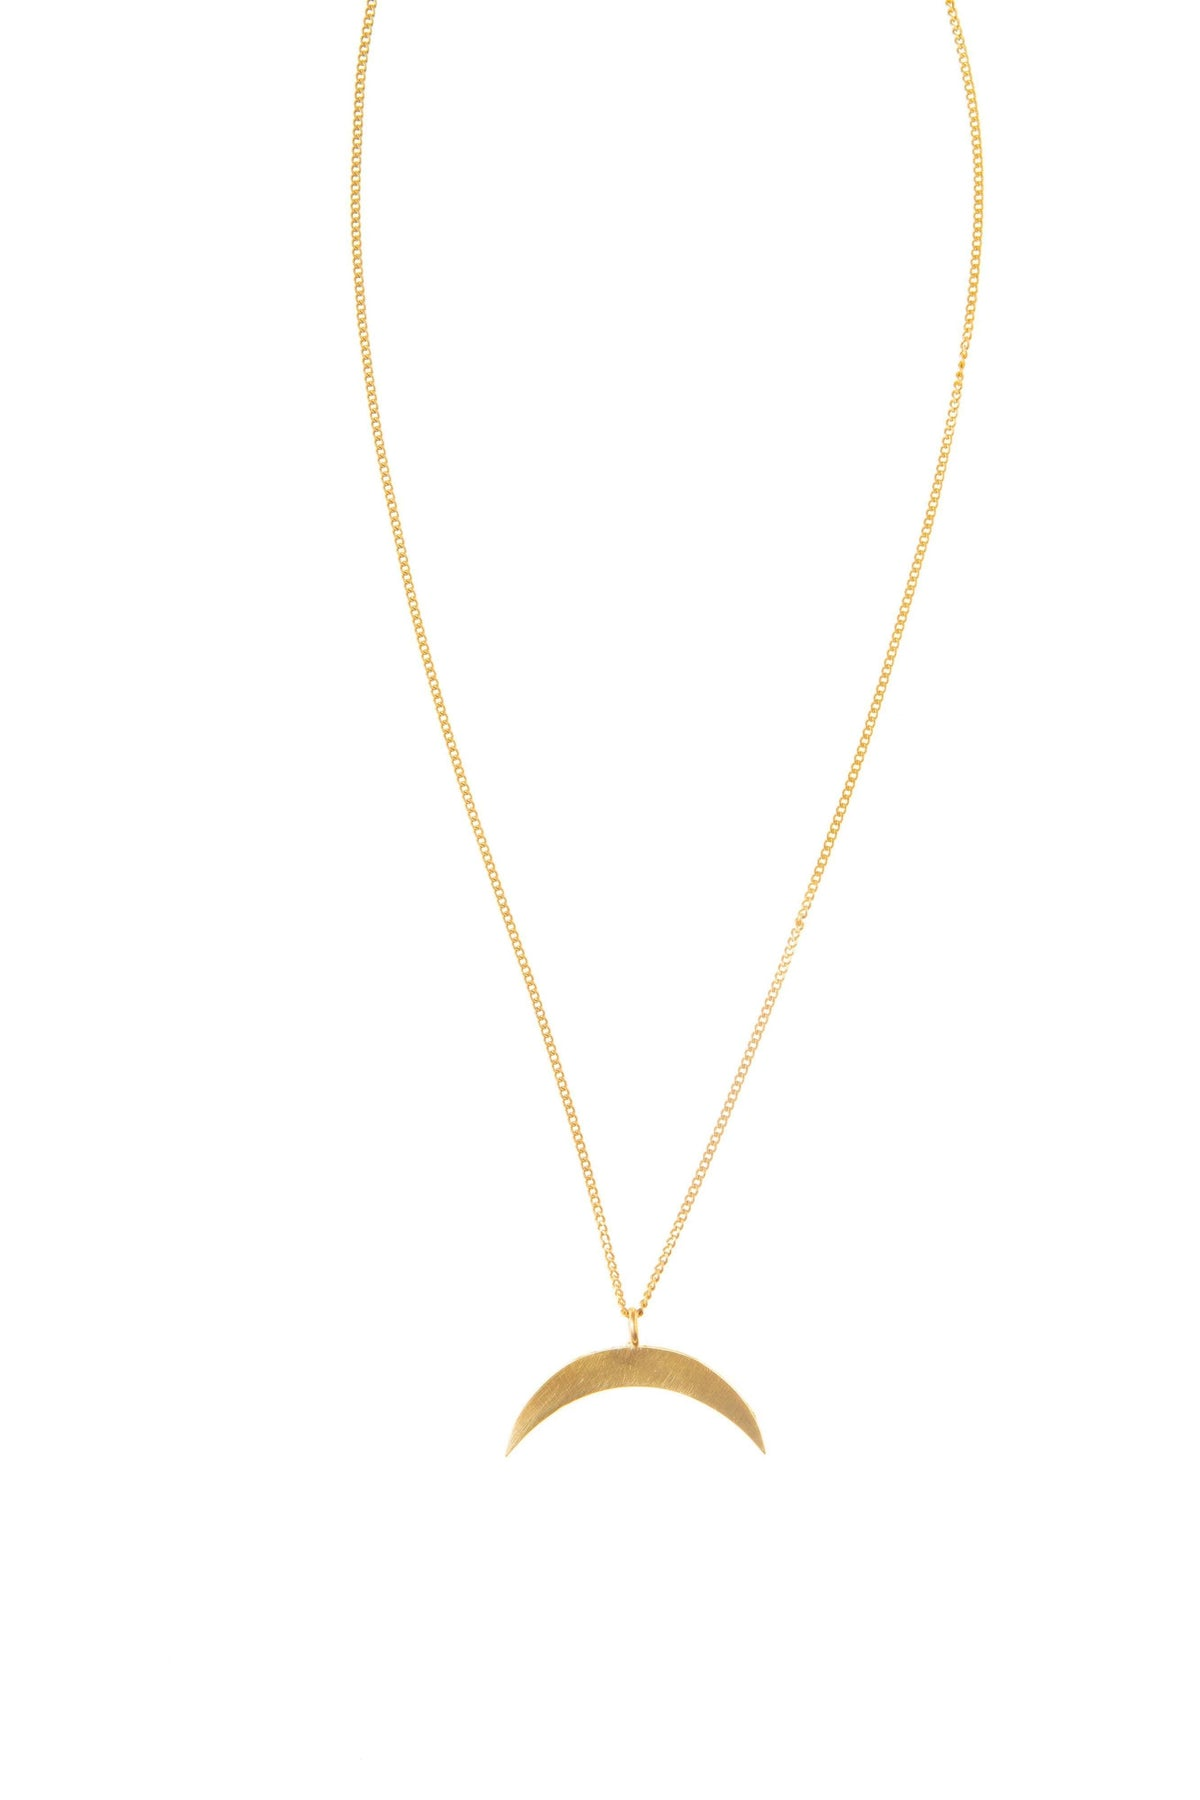 East to West Crescent Necklace